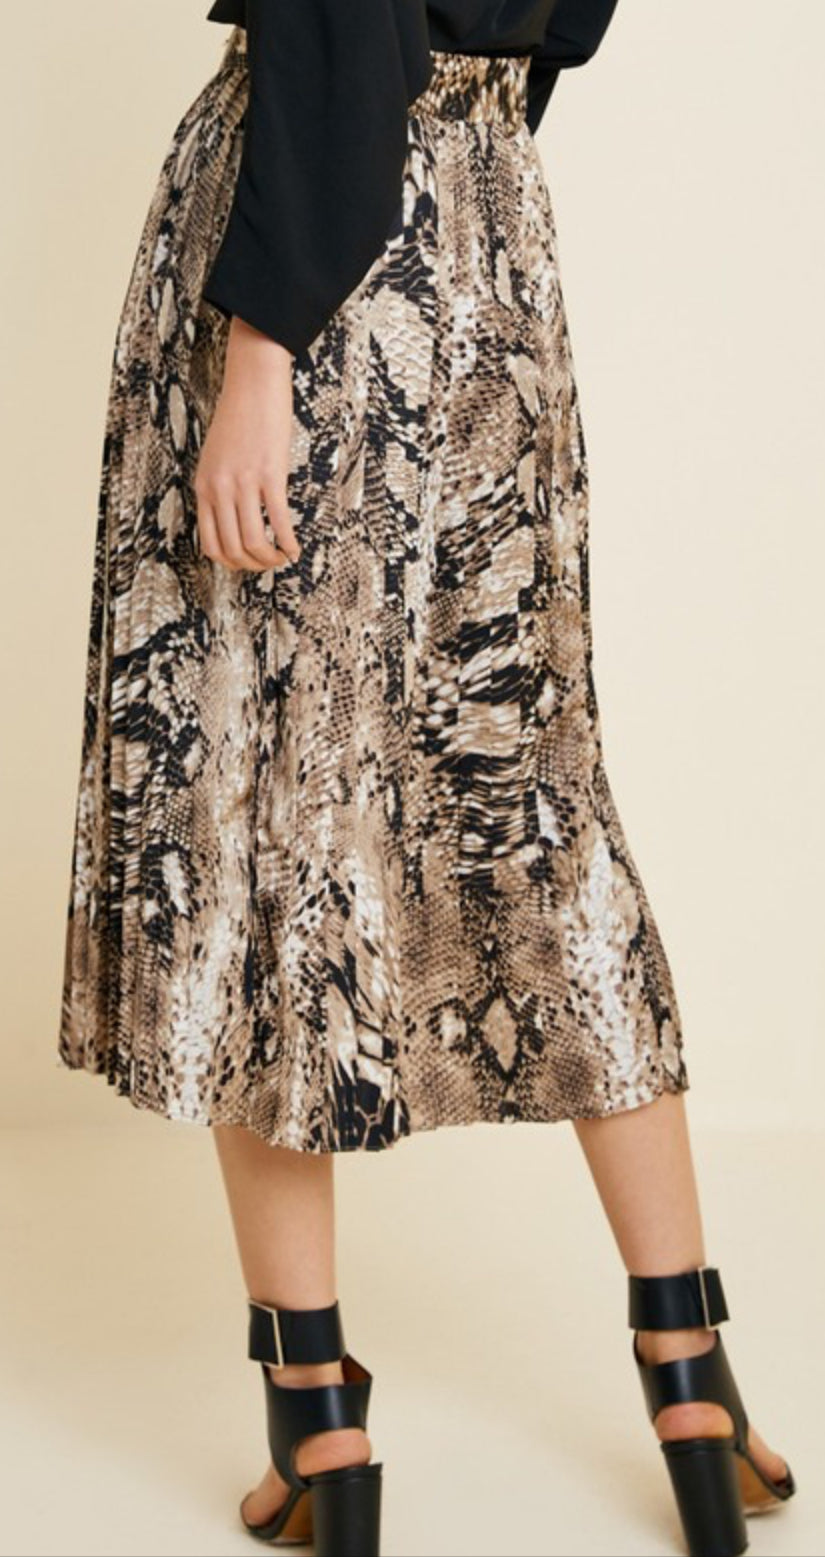 Long Loose Snake Print Skirt (Plus Sizes Available)